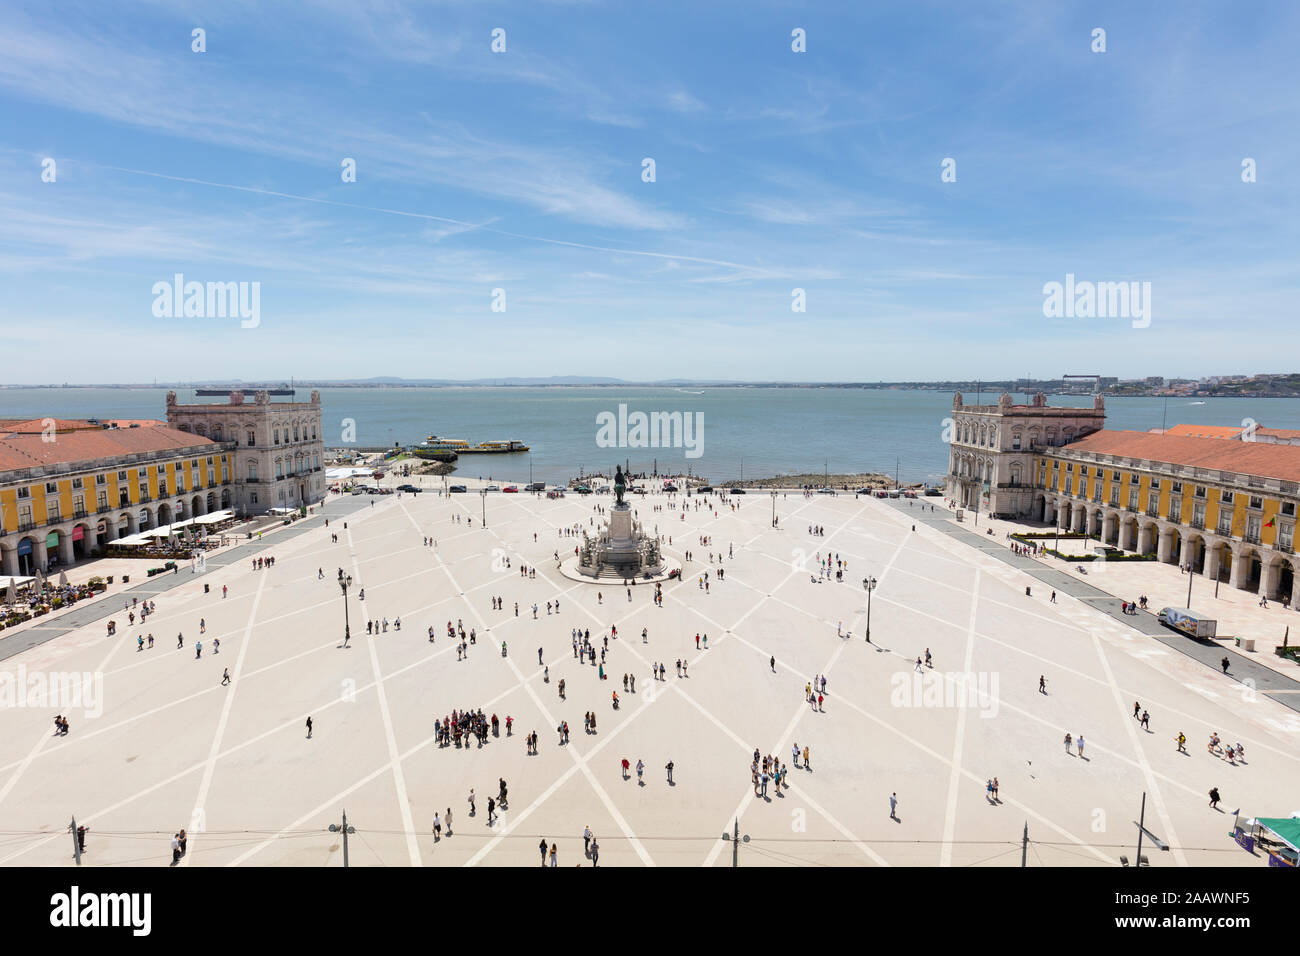 Aerial view of people at Praca do Comércio against sky, Lisbon, Portugal Stock Photo